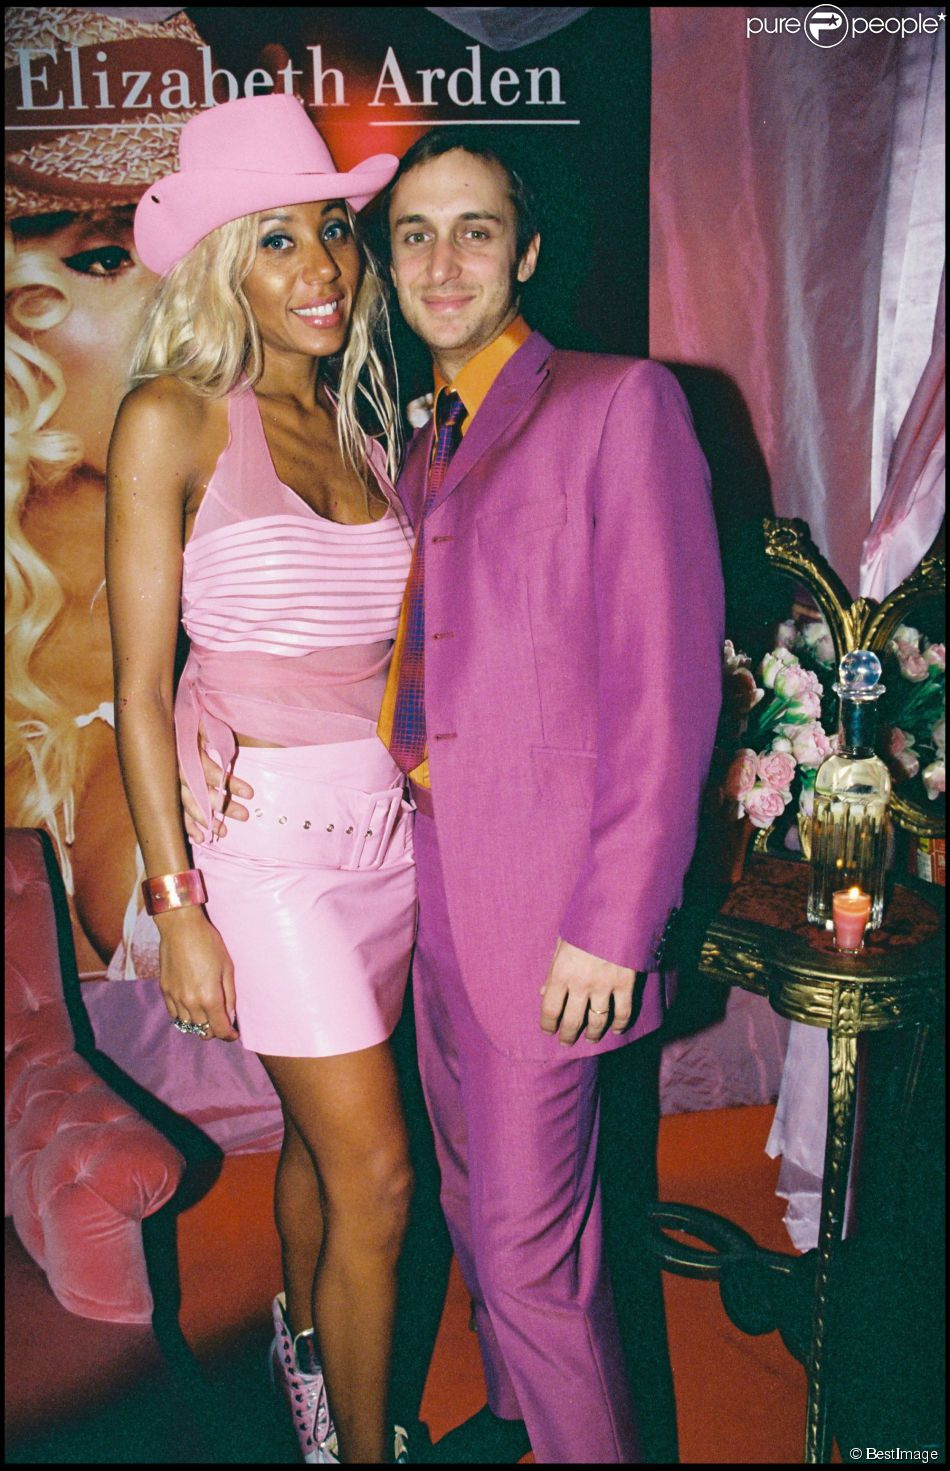 david et cathy guetta aux bains douches paris en 1999. Black Bedroom Furniture Sets. Home Design Ideas